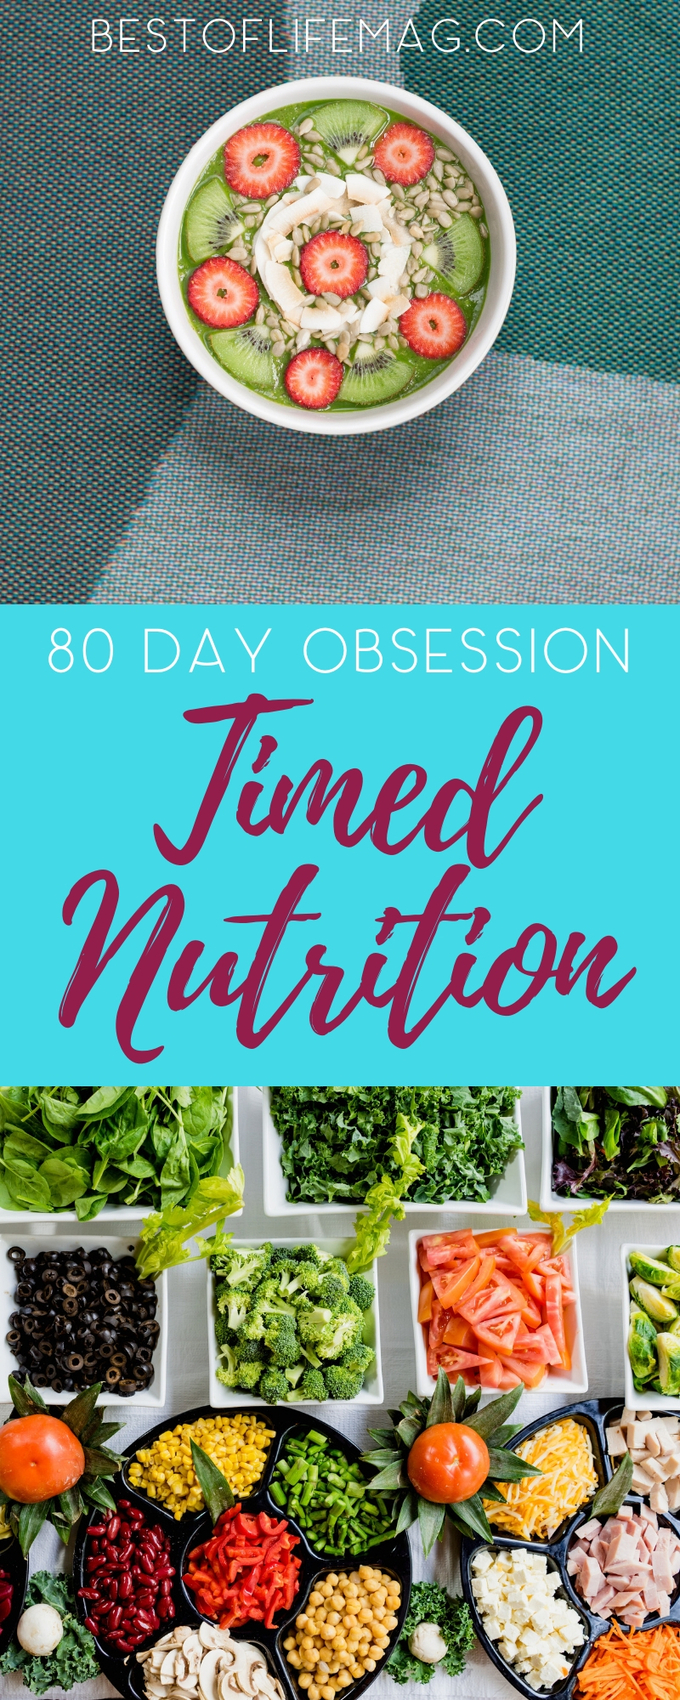 A key part of the success of the 80 Day Obsession Workout is the Timed Nutrition Plan that takes Beachbody portion control containers to the next level for maximum weight loss. 80 Day Obsession Tips | Timed Nutrition Tips | 21 Day Fix Container Counts | Beachbody Portion Control Containers | Weight Loss Meal Plan | Portion Control Container Recipes | Beachbody Recipes #80dayobsession